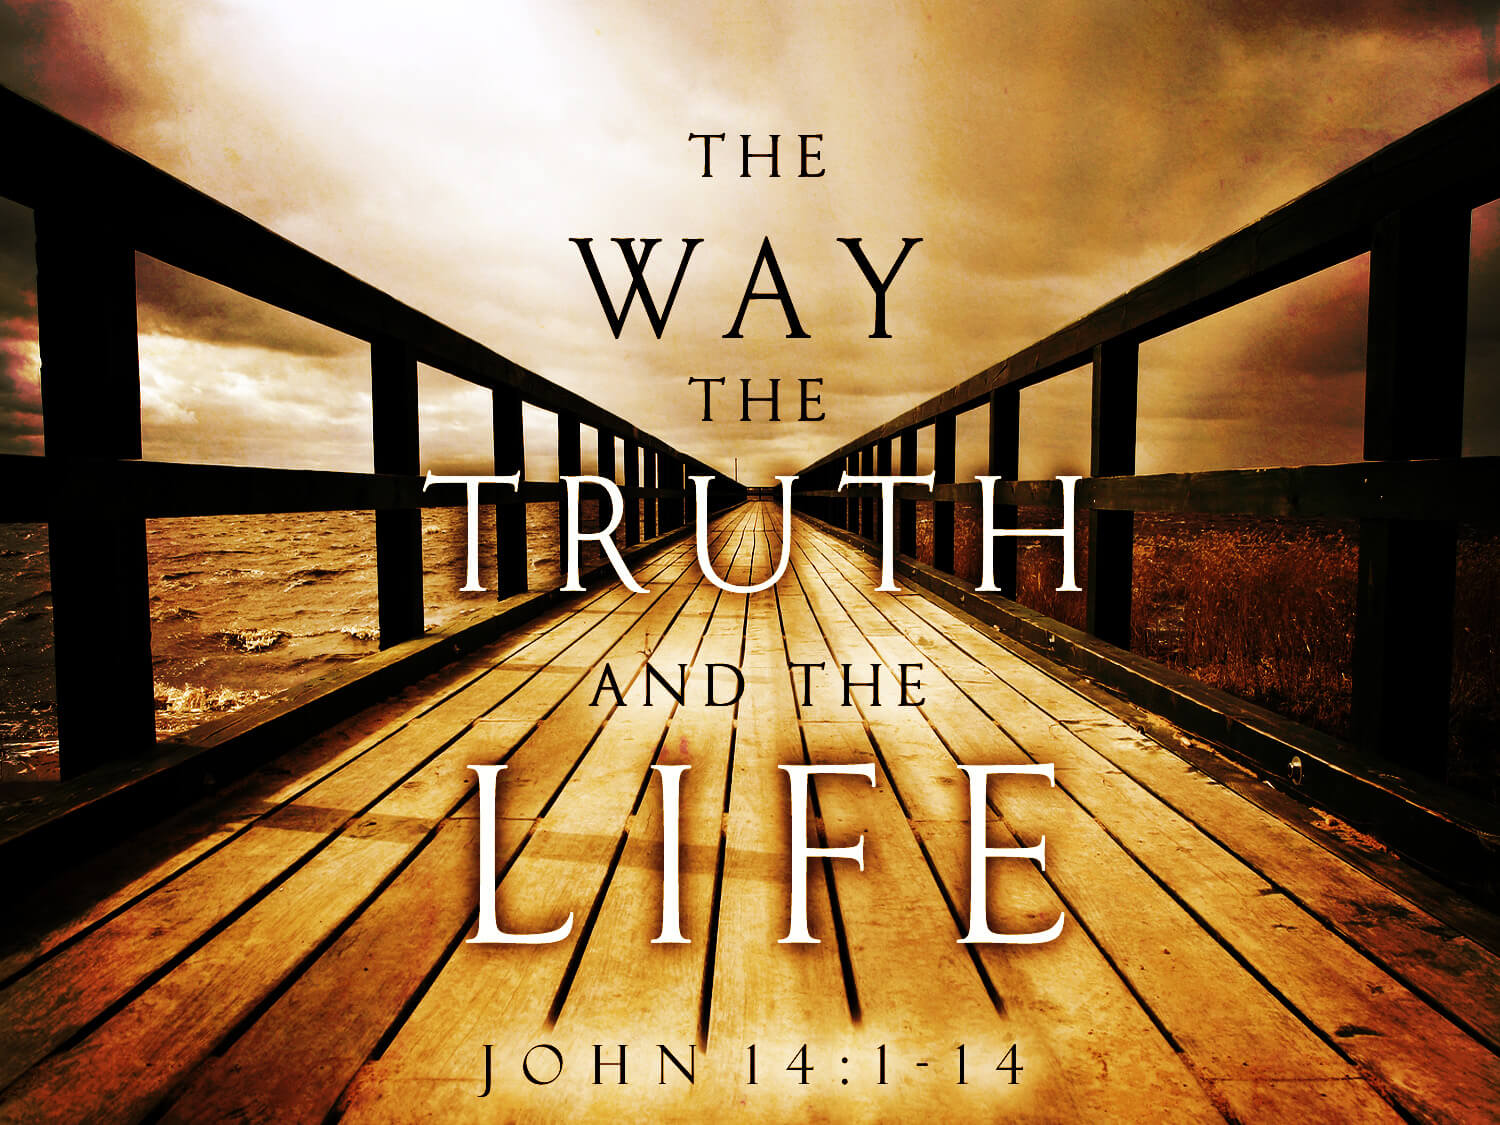 I am the Way, the Truth, and the Life - John 14:6